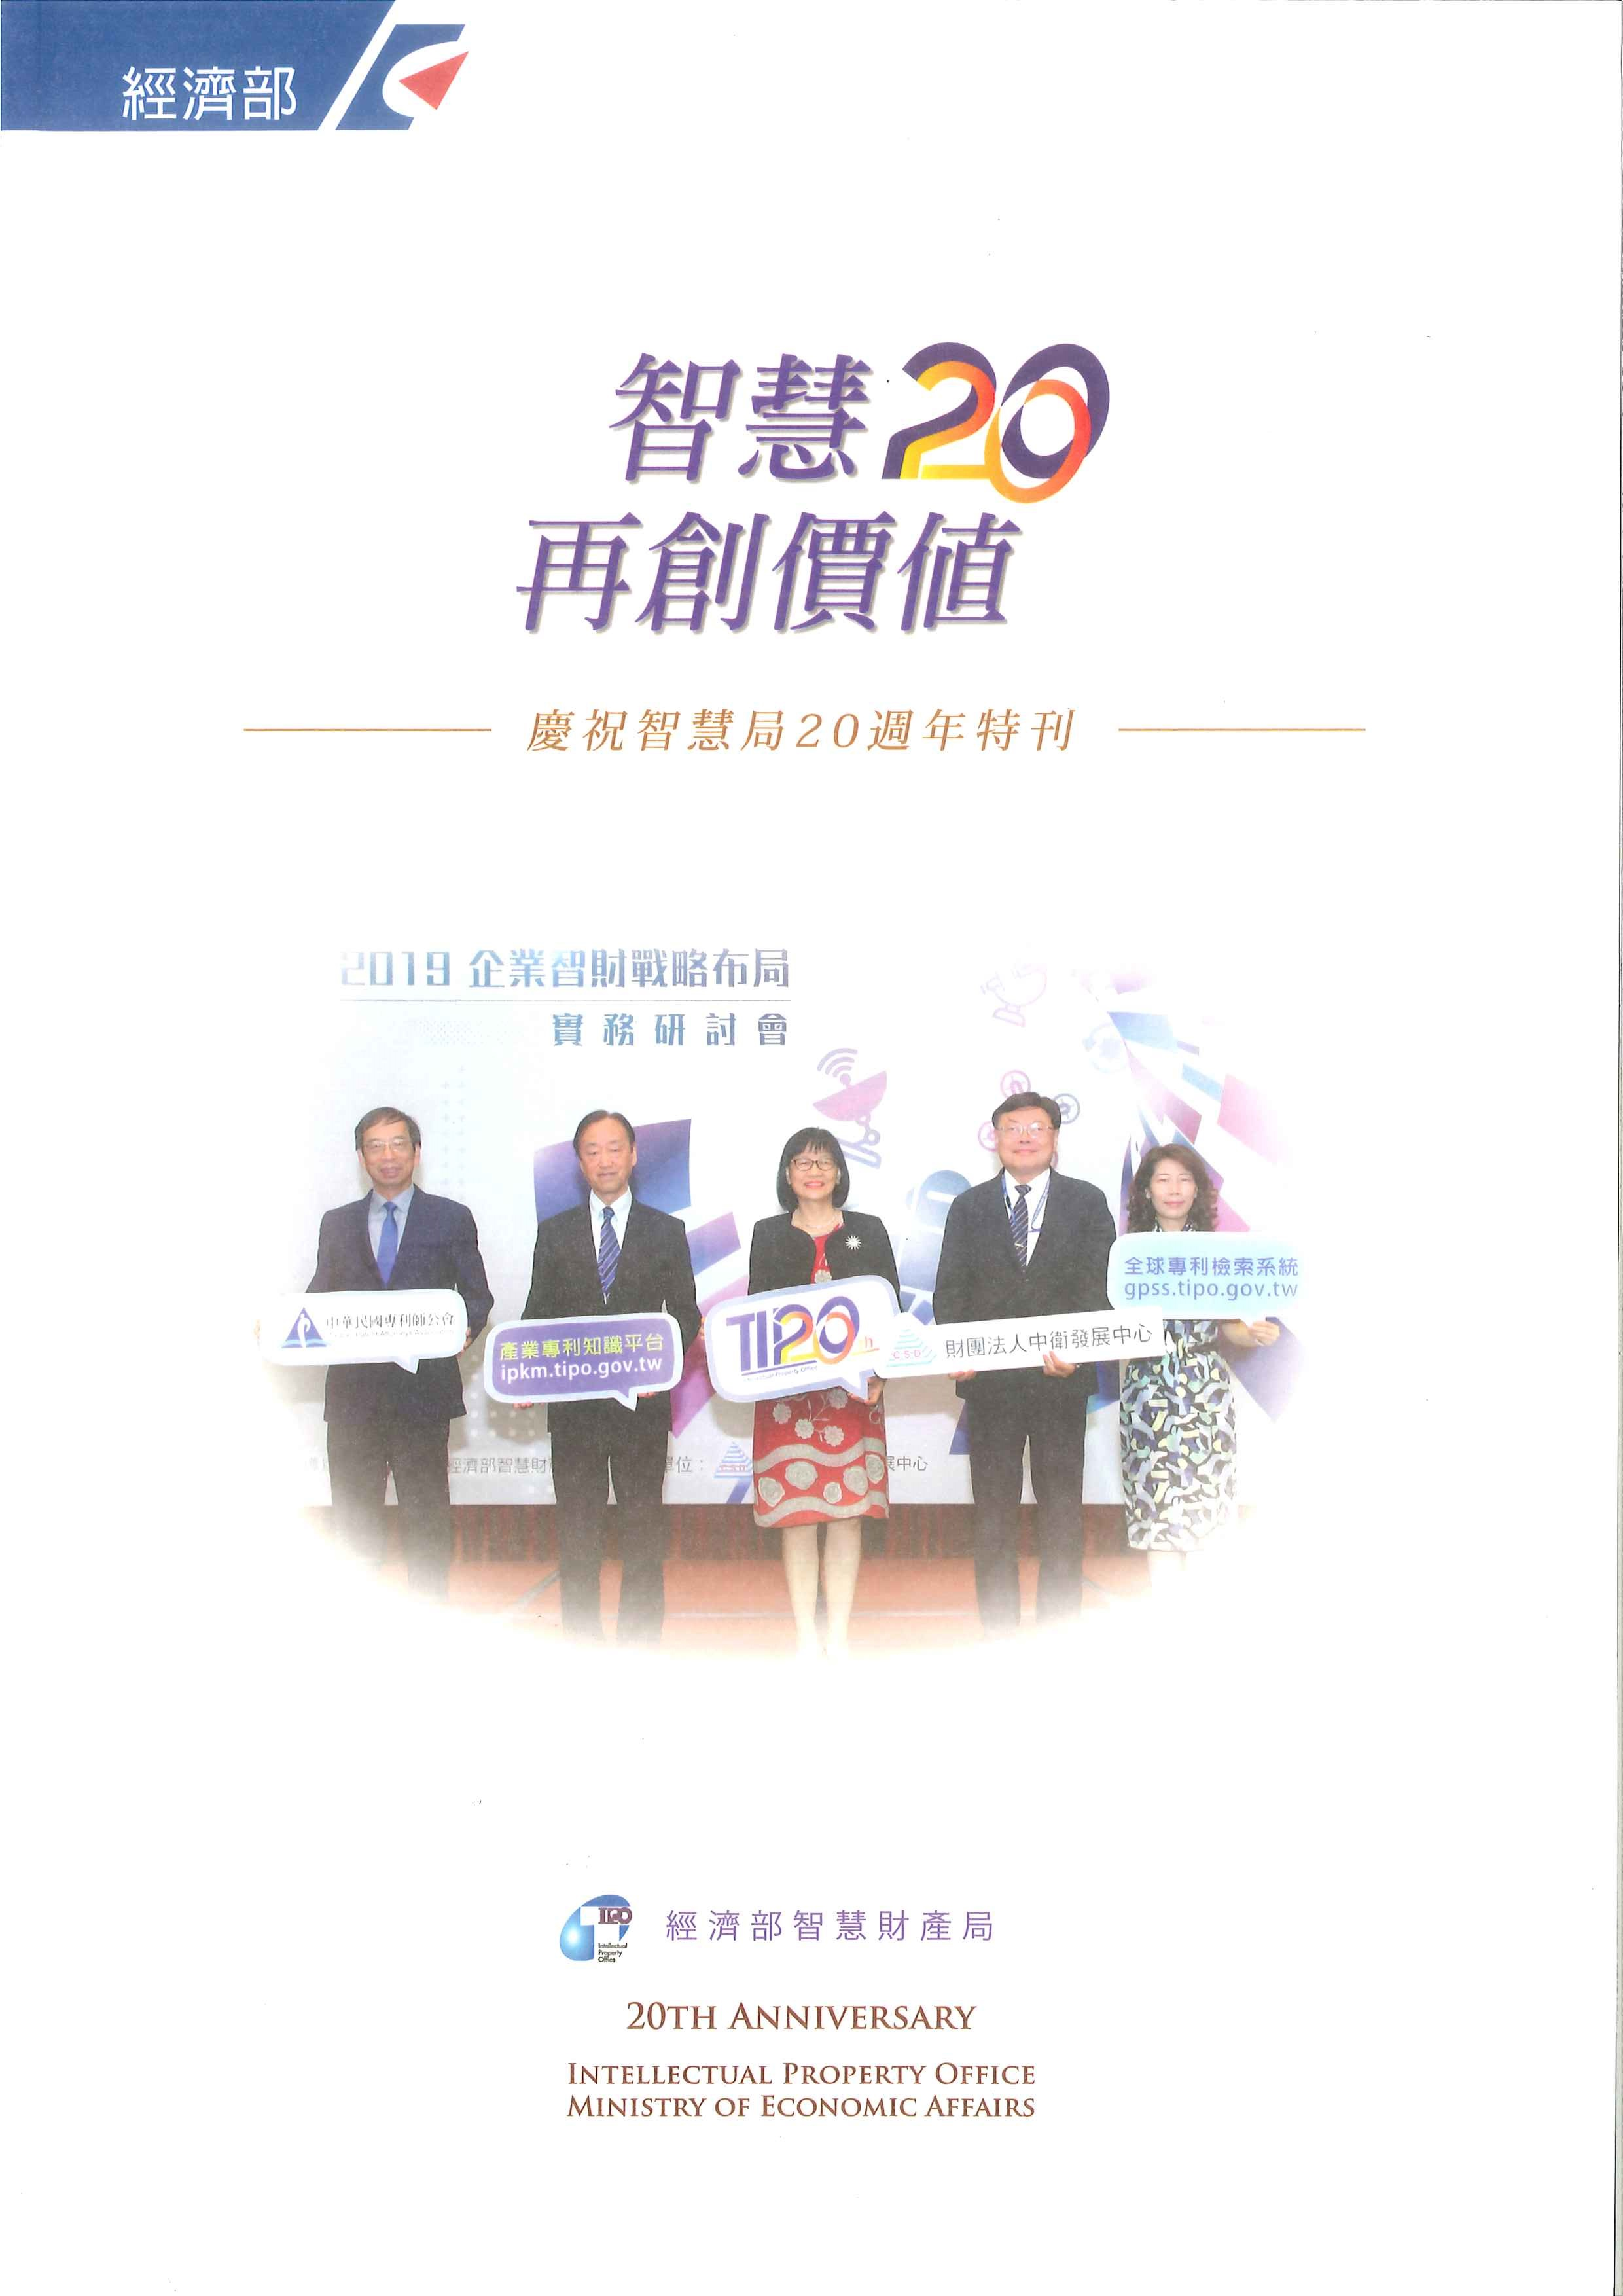 智慧20再創價值:慶祝智慧局20週年特刊=20th anniversary Intellectual Property Office Ministry of Economic Affairs